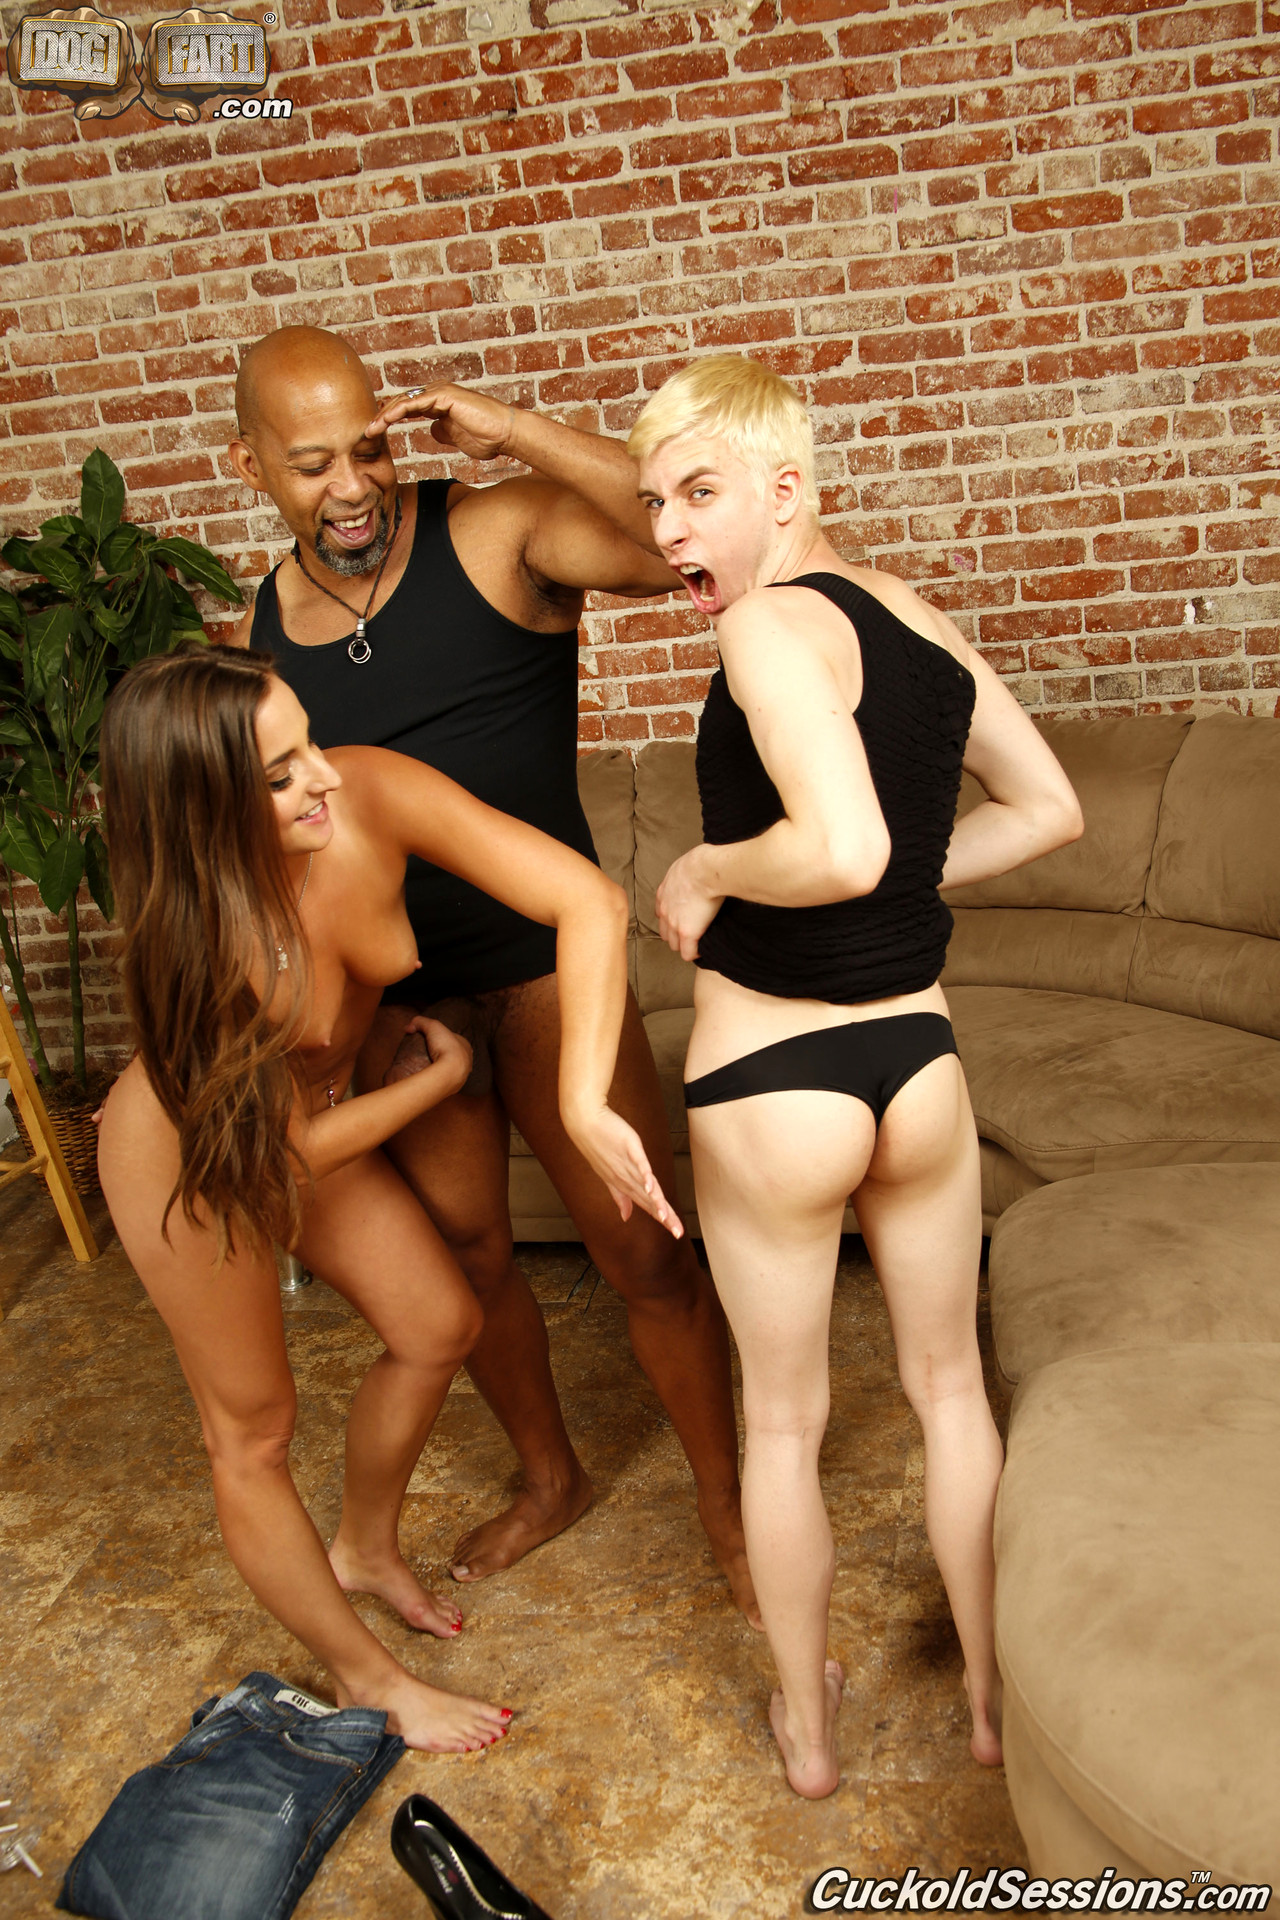 Babe Today Cuckold Sessions Amirah Adara Amazing ...